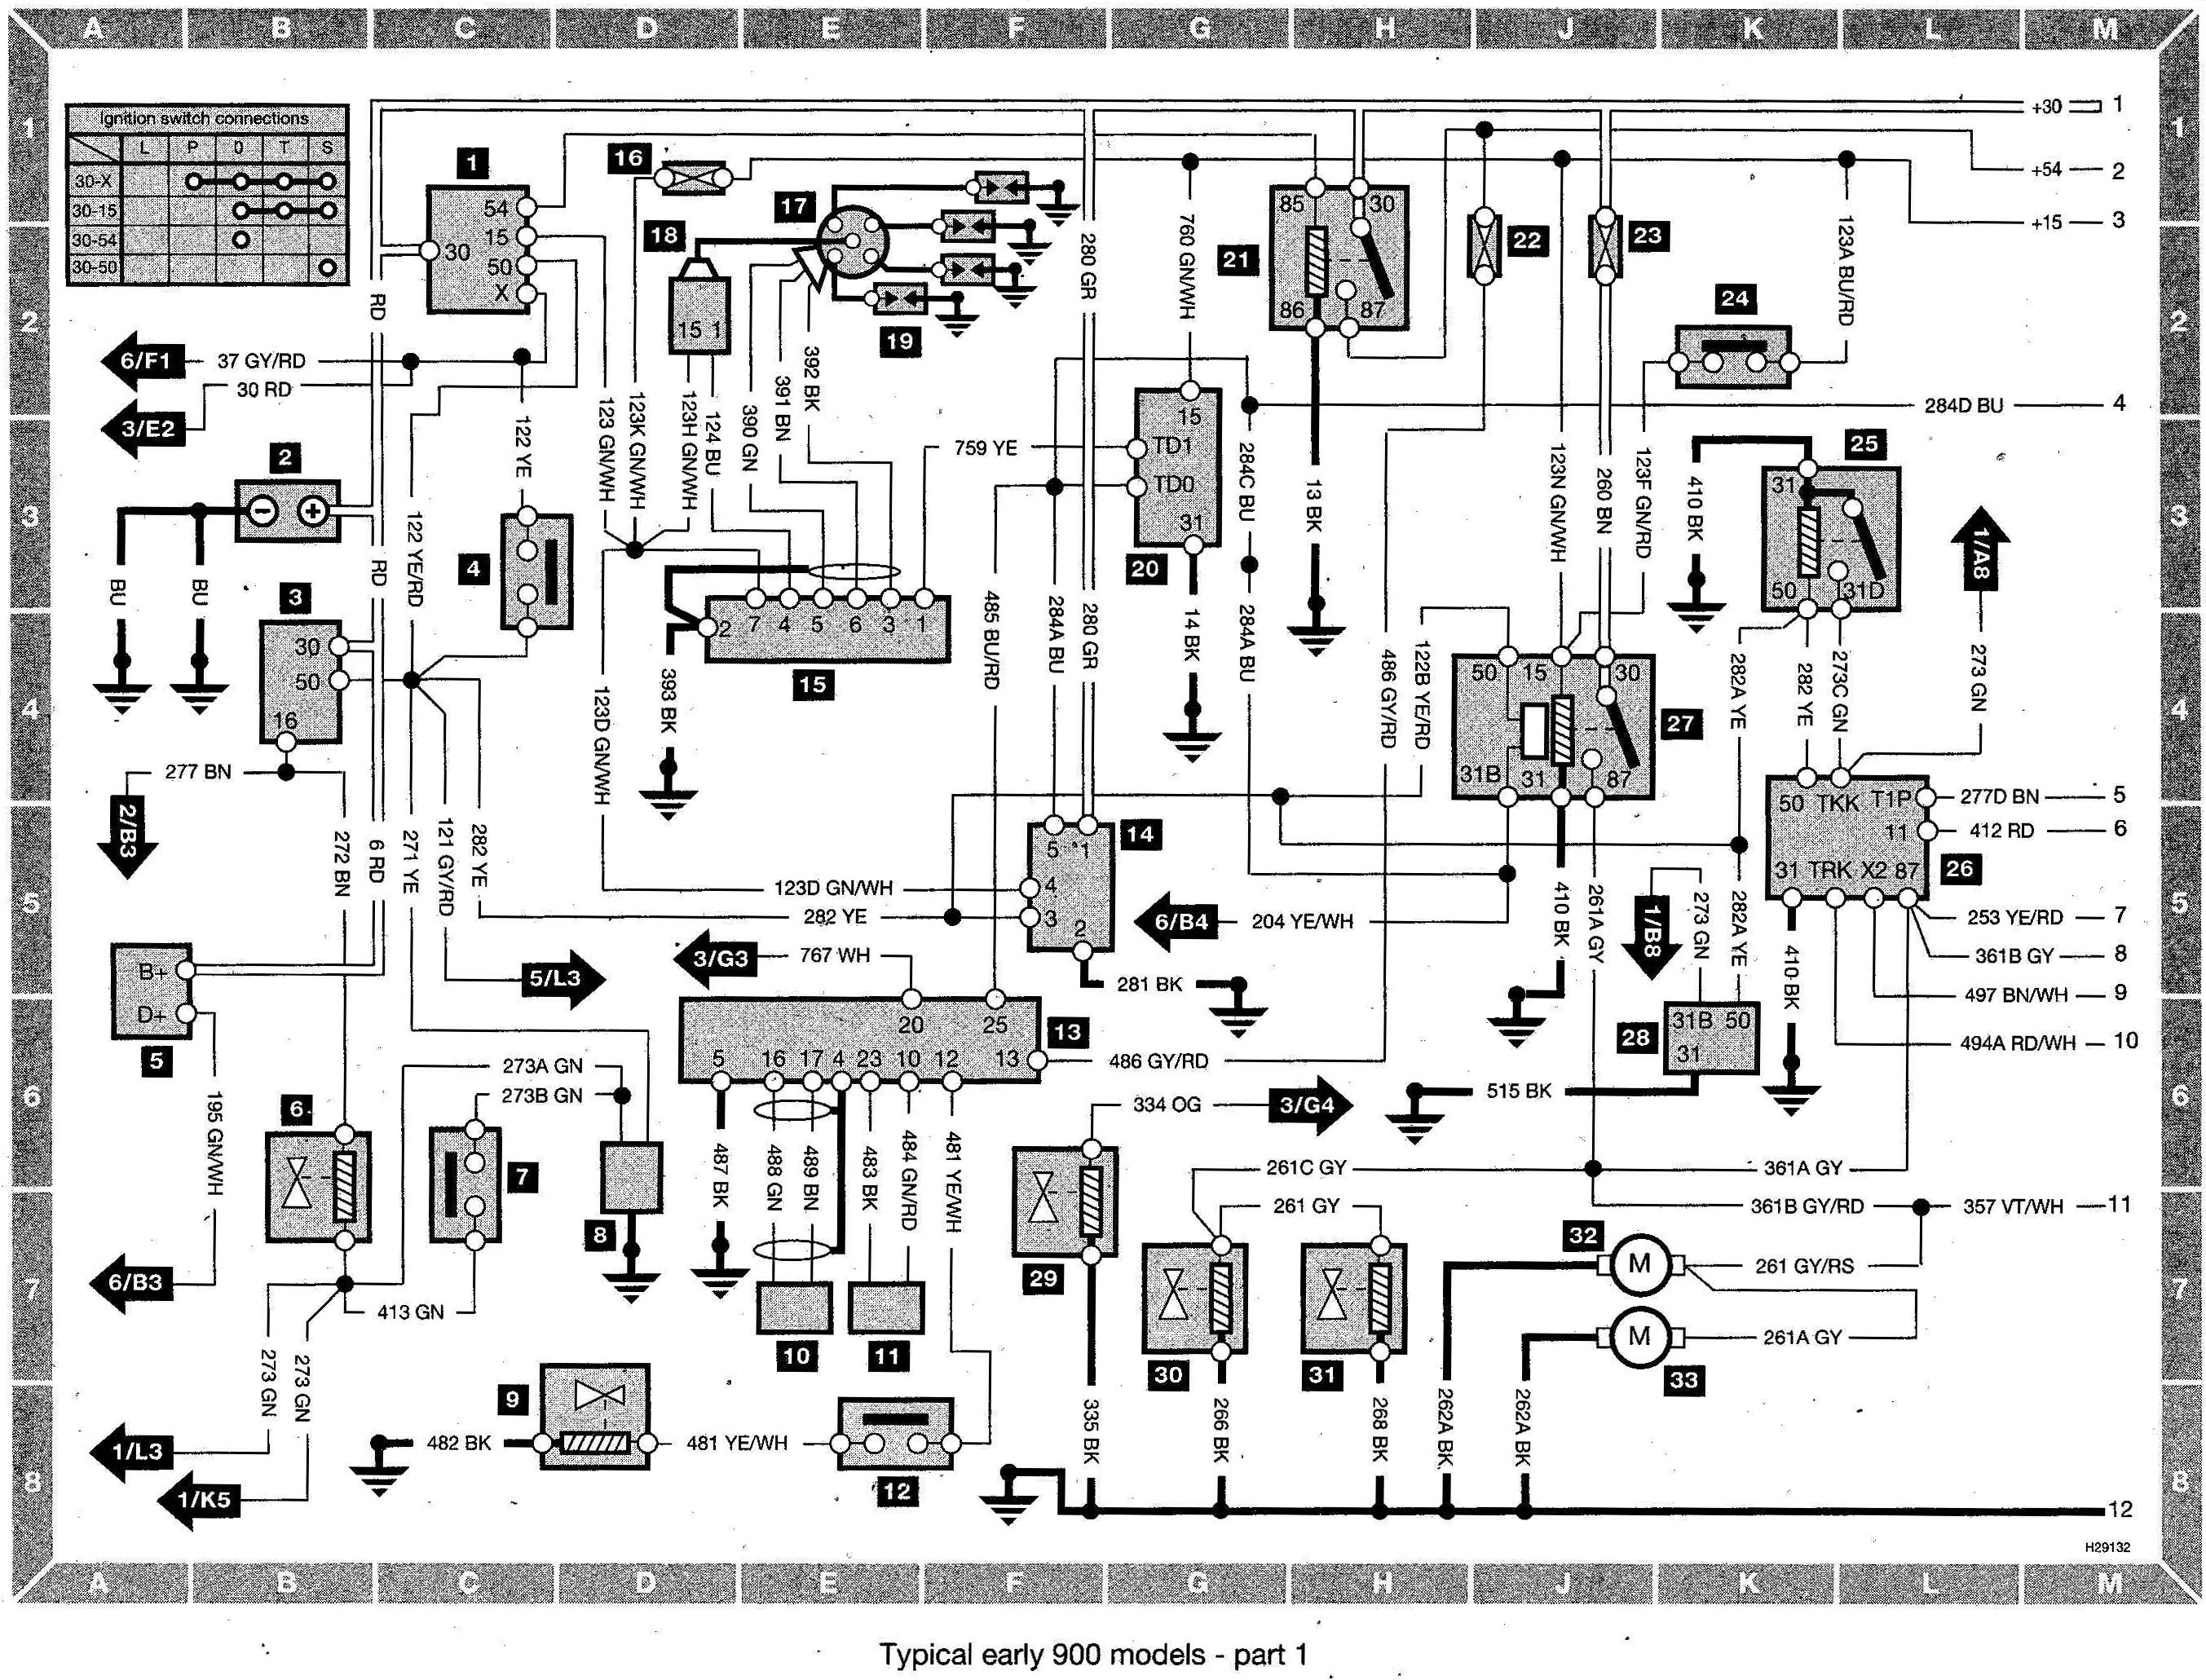 saab 9 5 parts diagram  u2022 wiring diagram for free